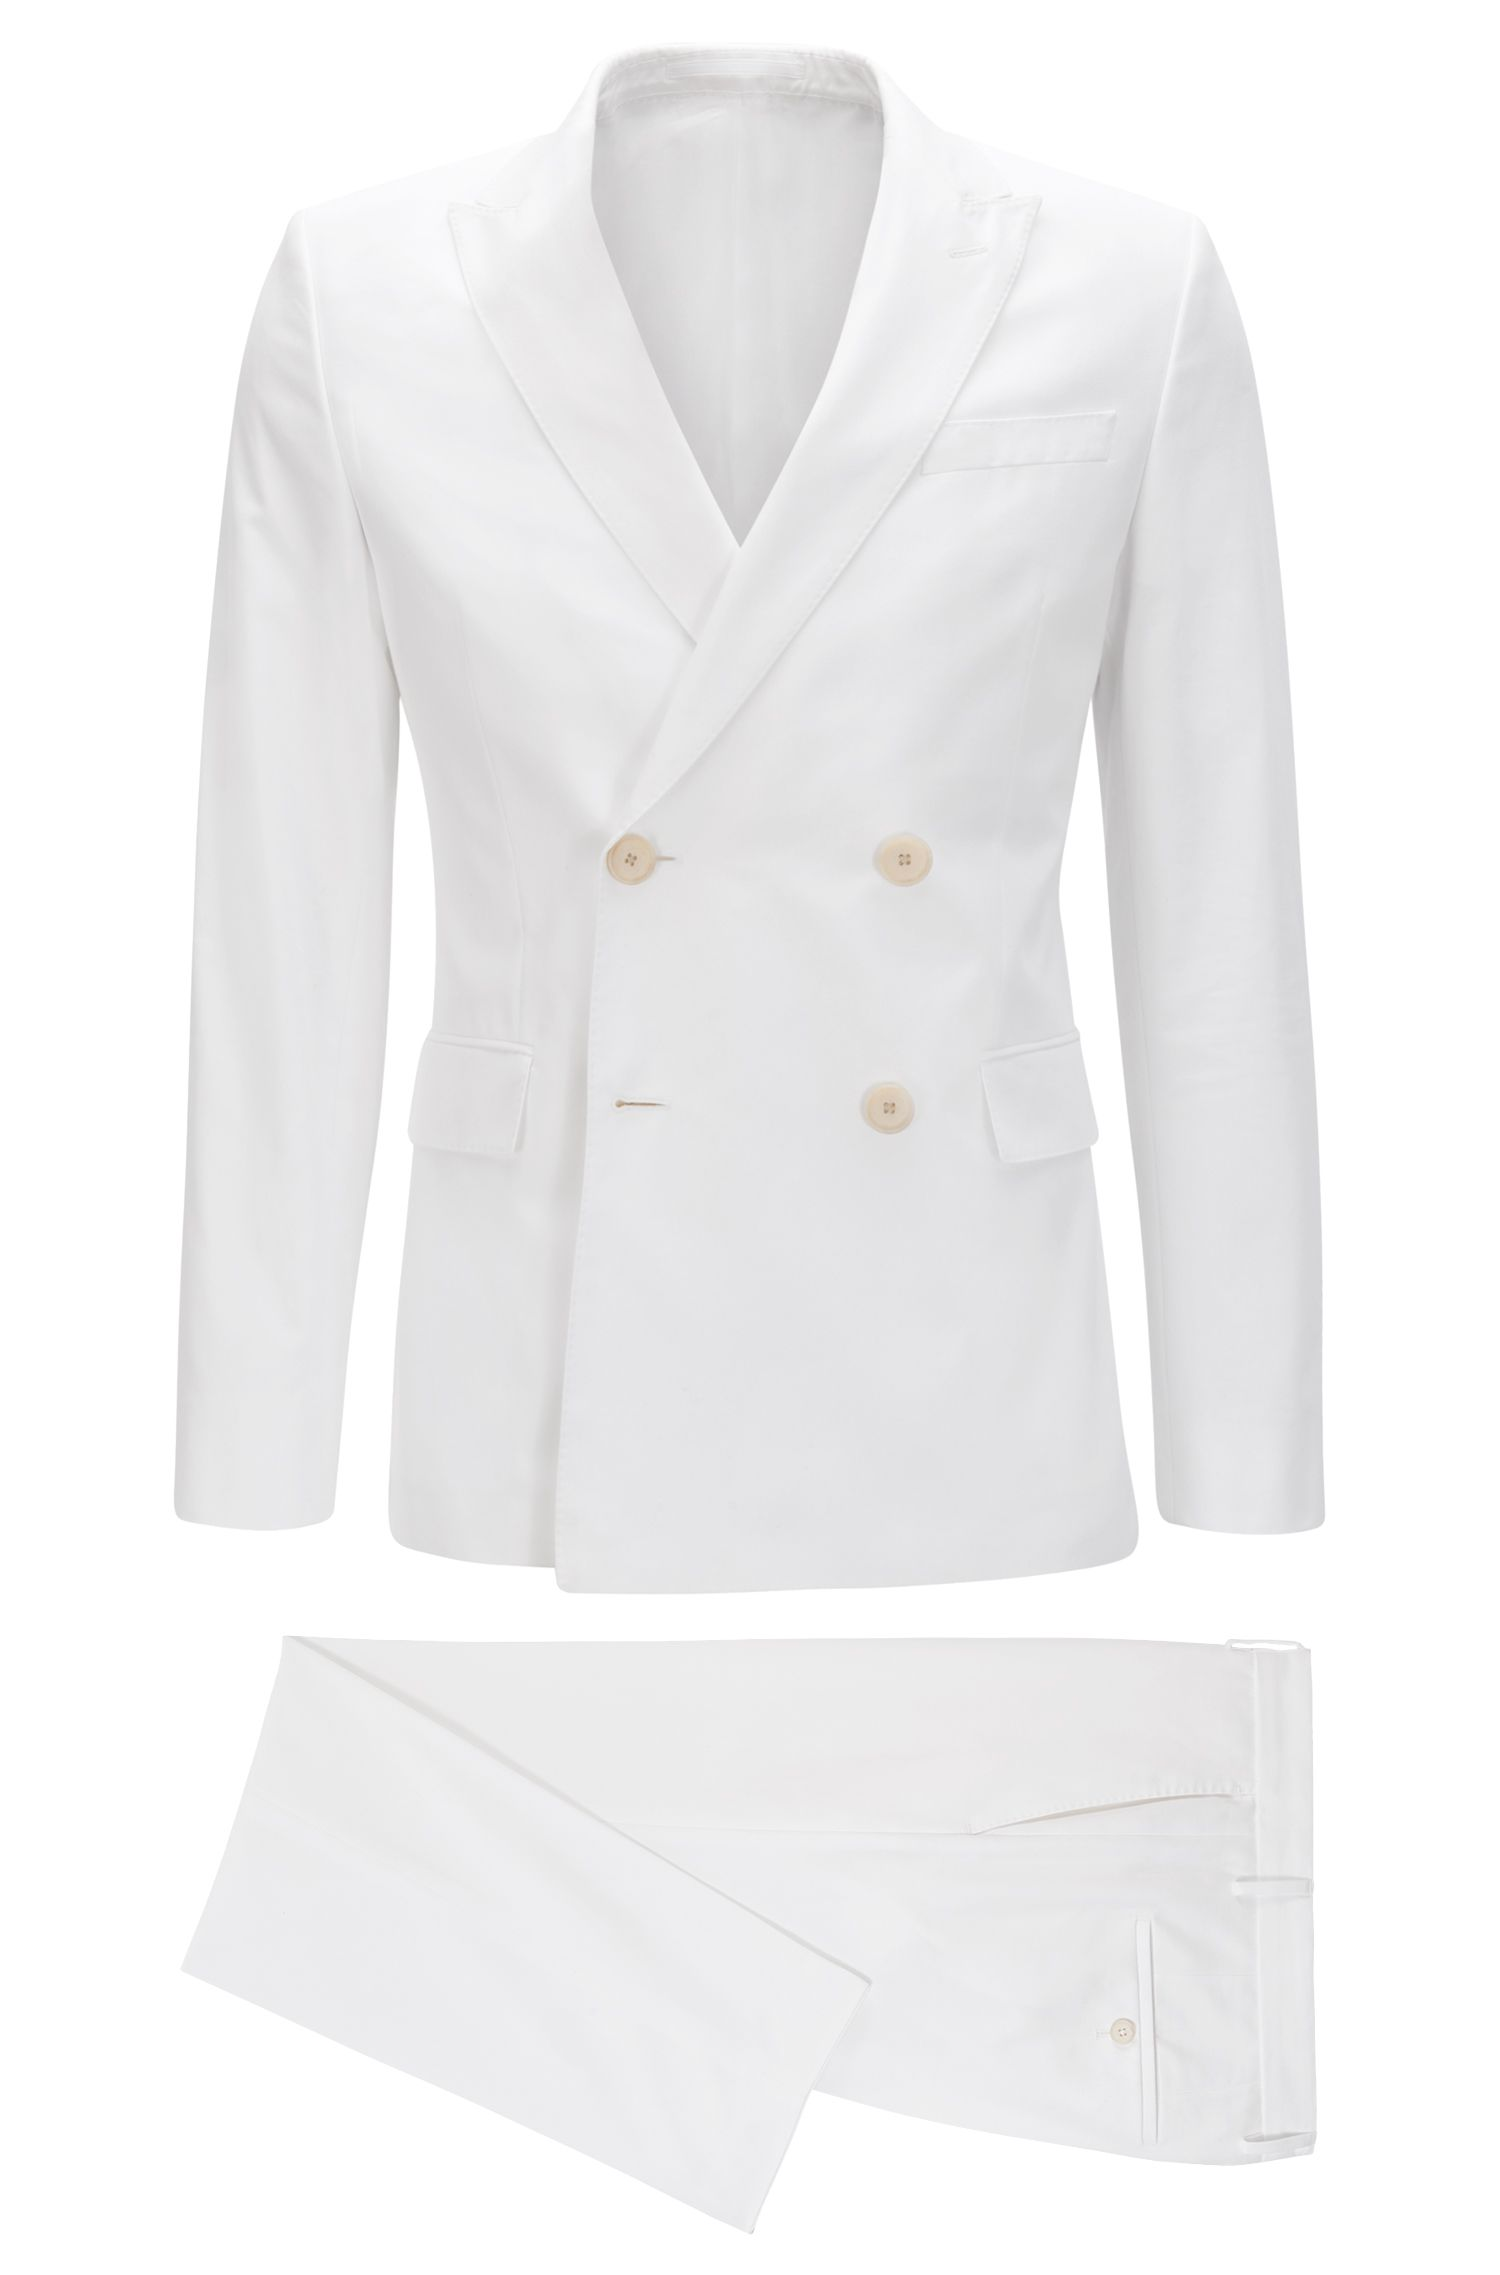 Slim-fit double-breasted suit in pure cotton